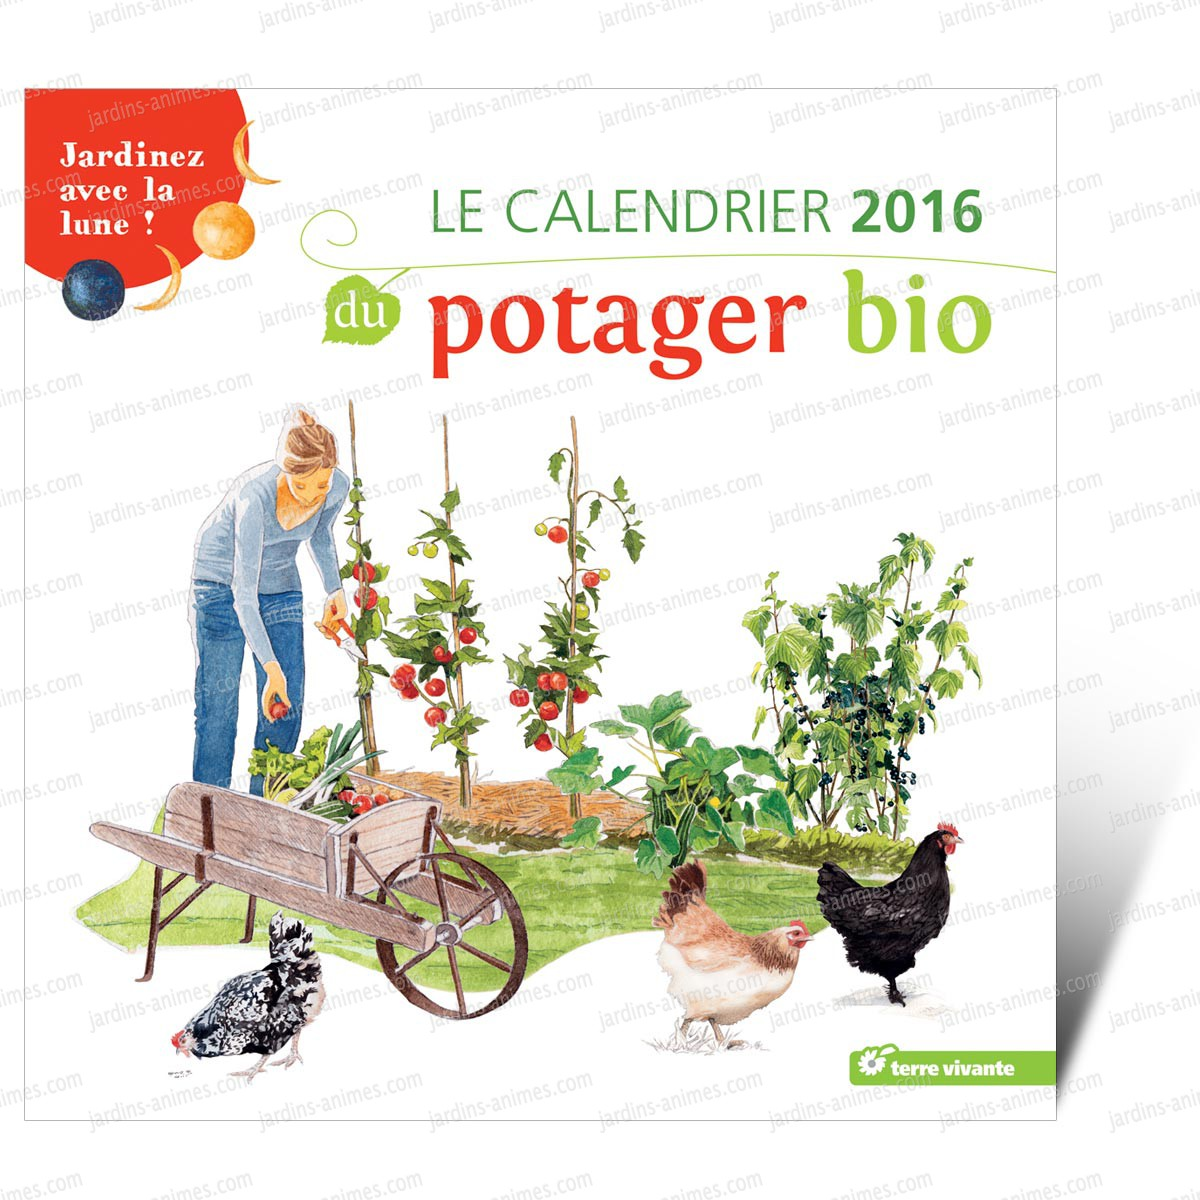 calendrier 2016 du potager bio jardinez avec la lune livres jardin bio. Black Bedroom Furniture Sets. Home Design Ideas